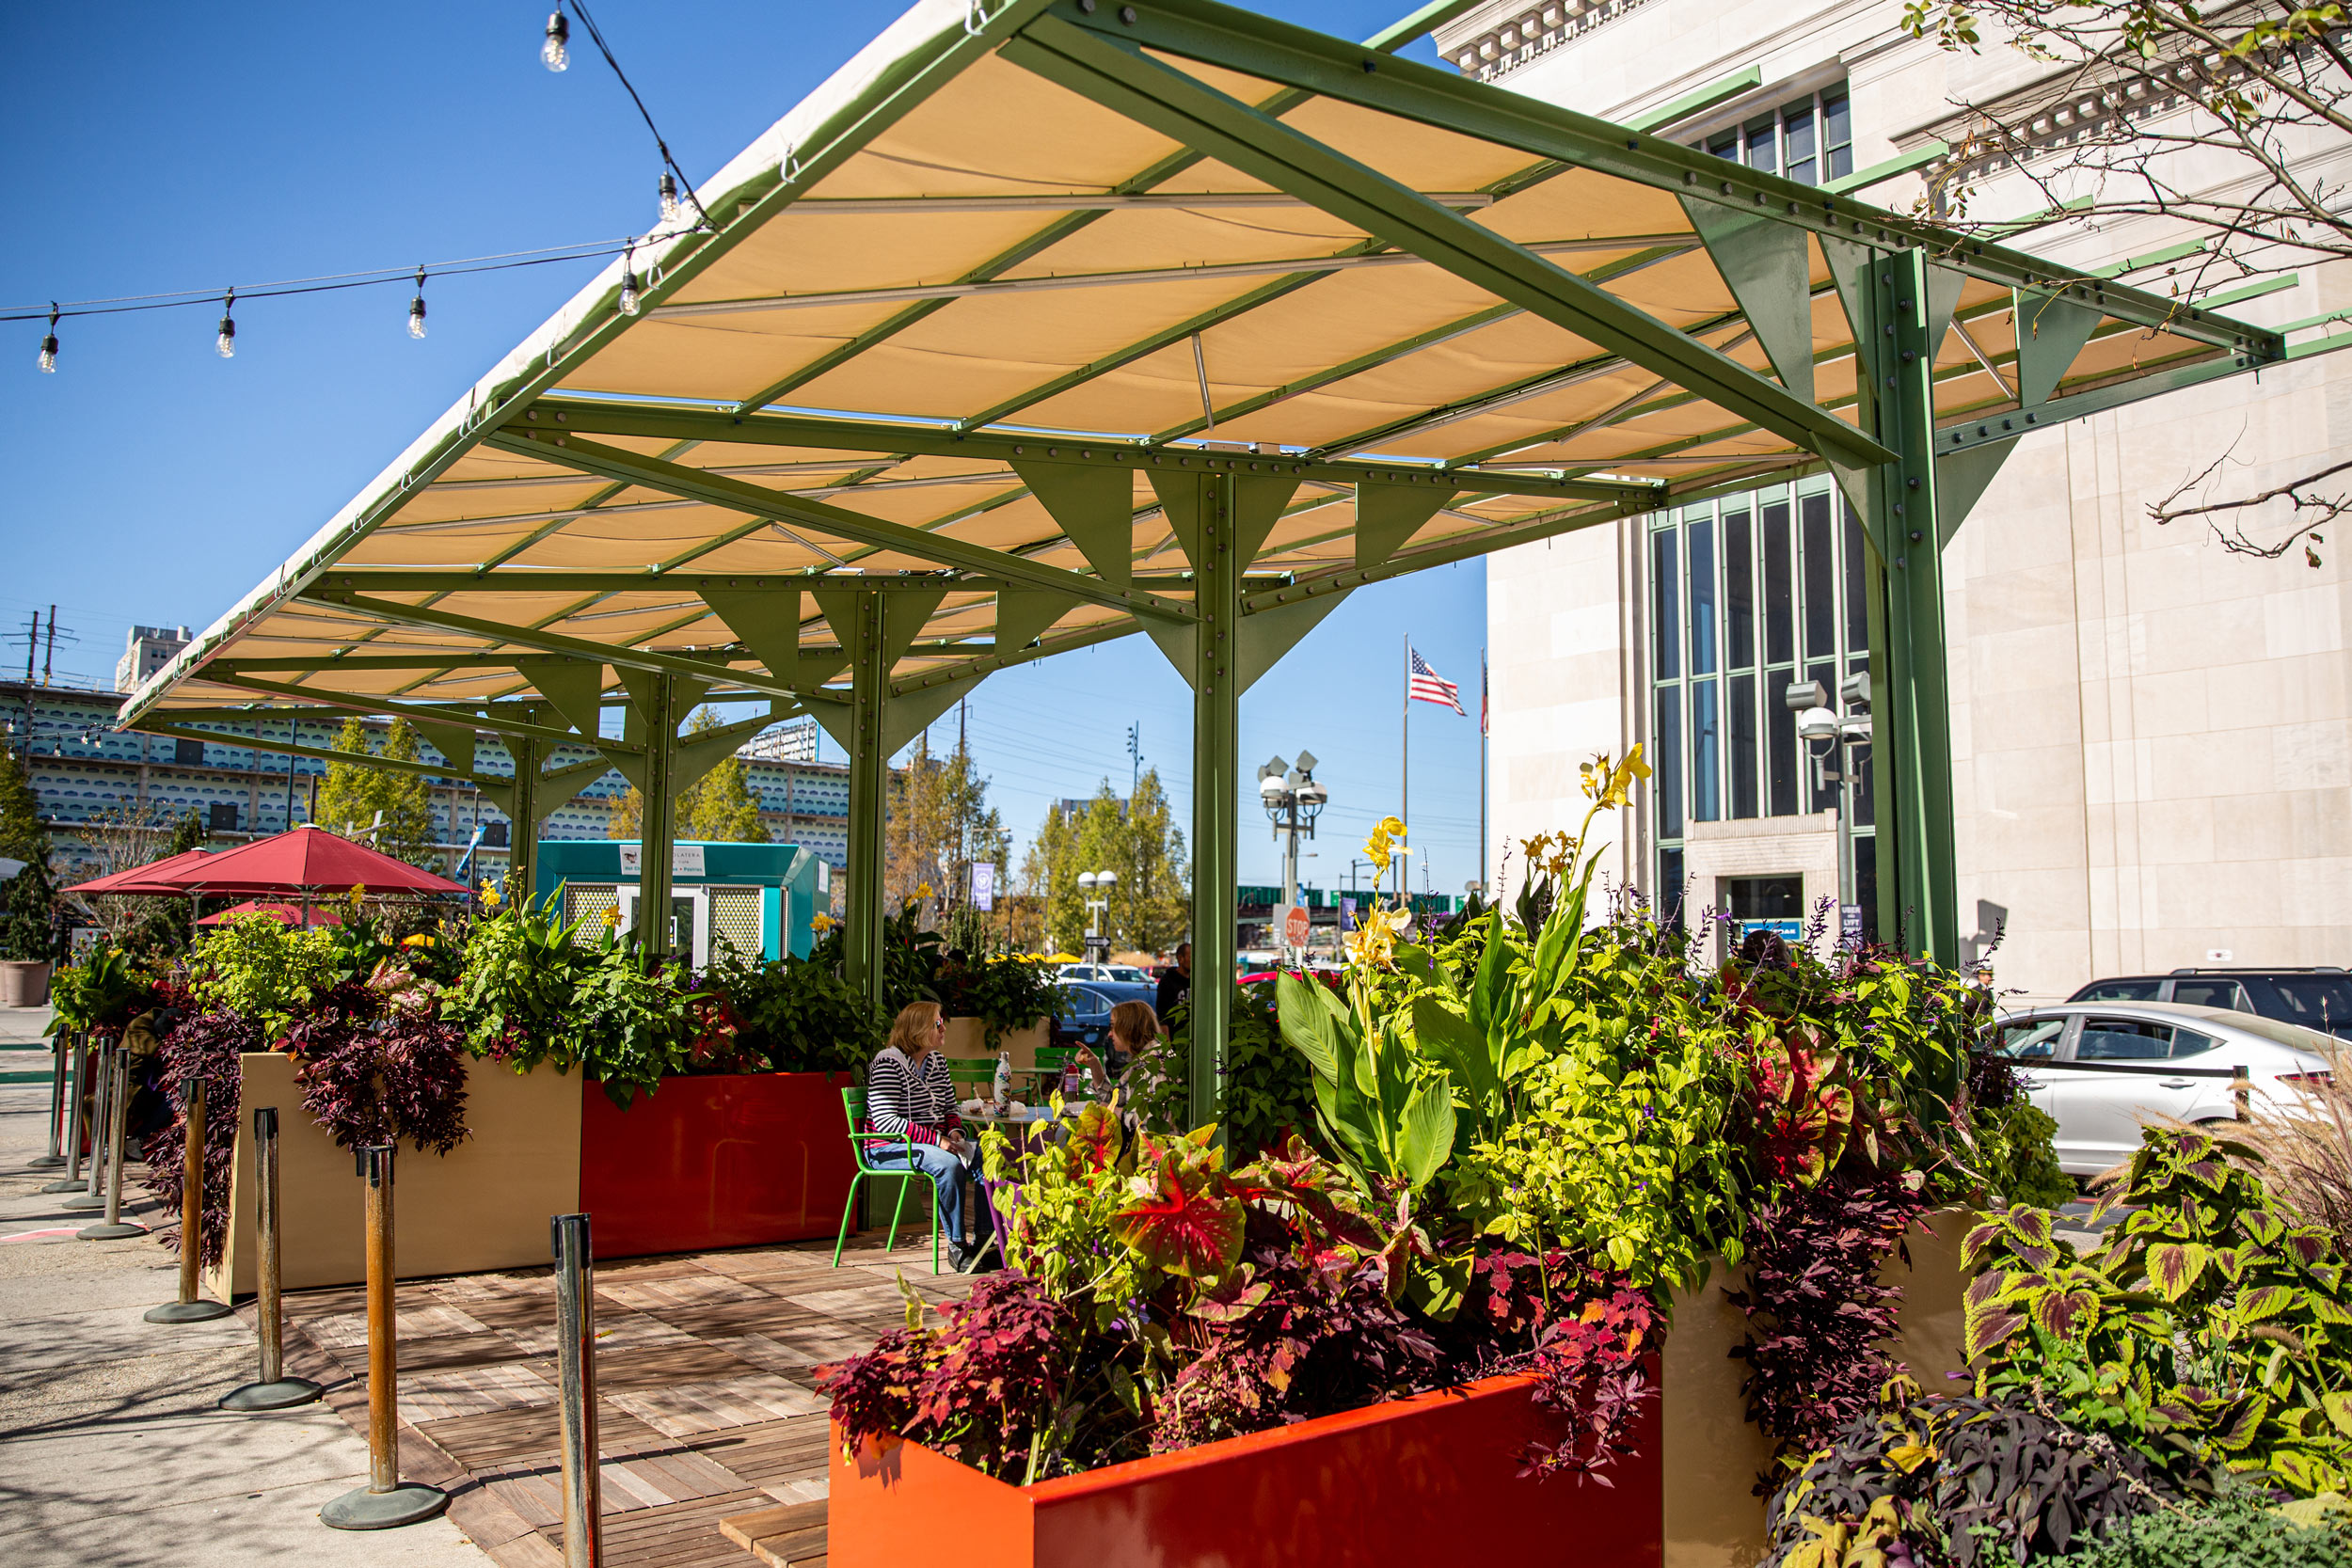 GCW installed wood decking, furniture, and tropical plantings for the new shade structure at the Porch at 30th Street Station, one of the public spaces that we maintain.